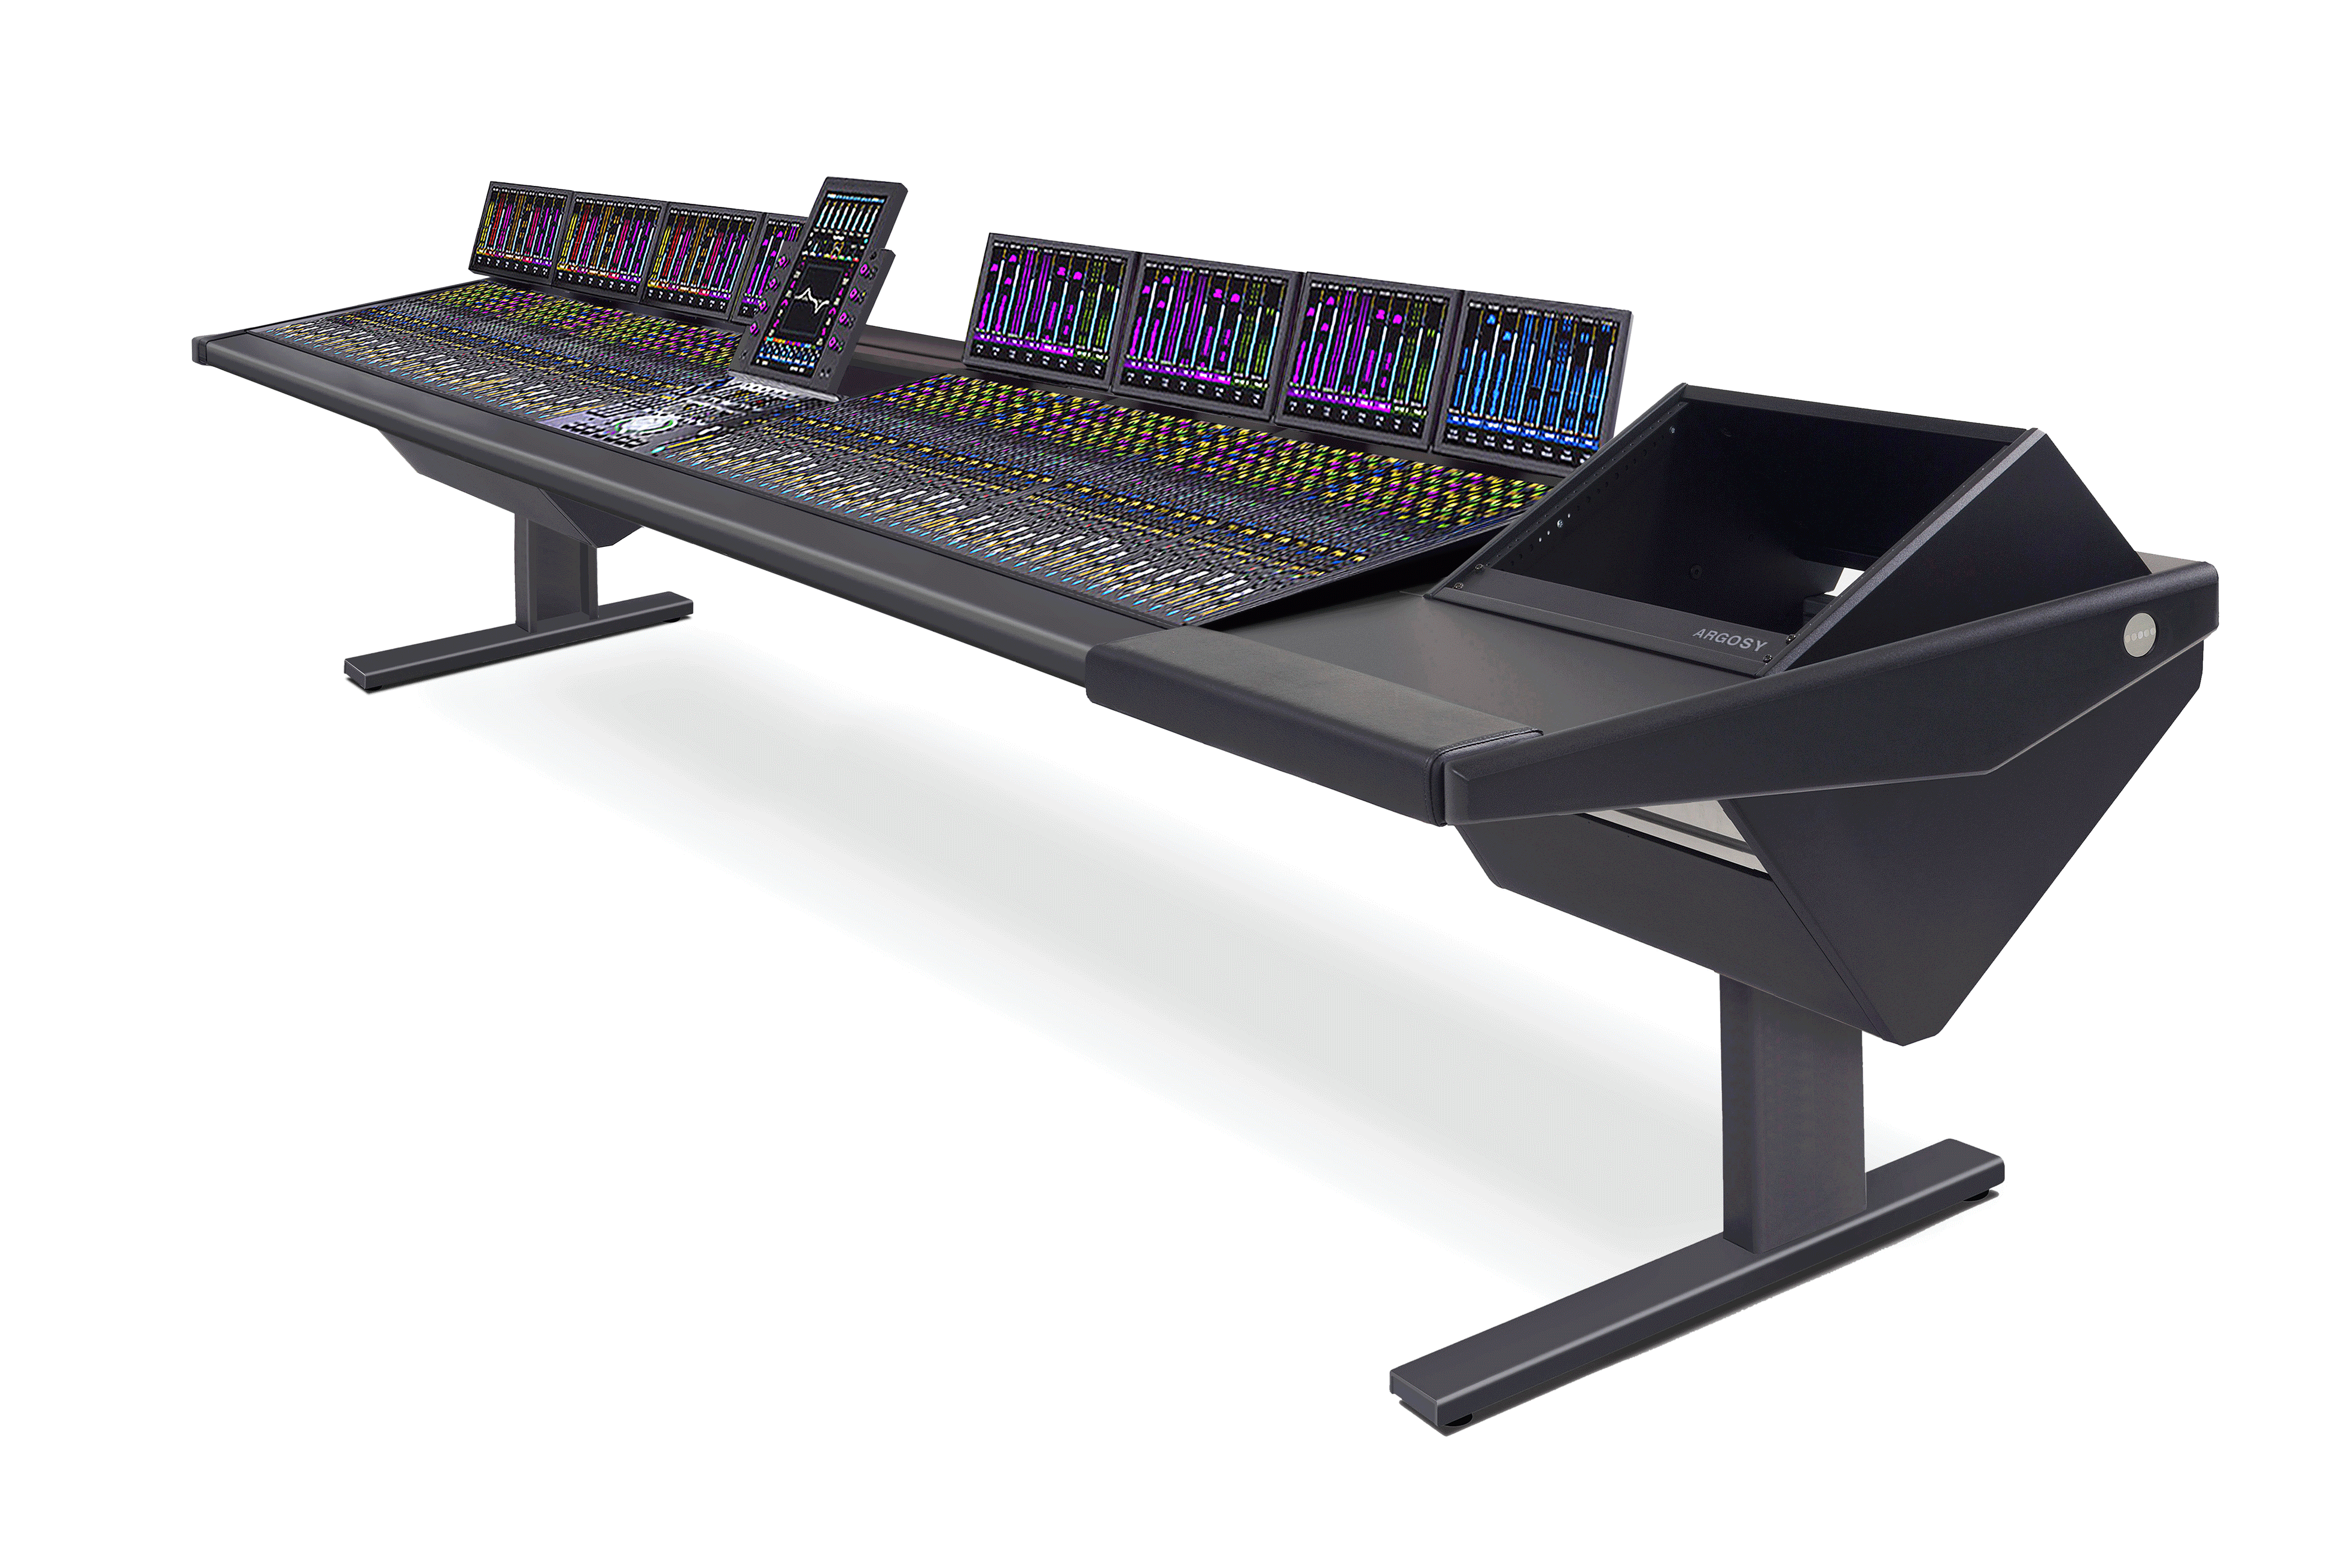 64 Fader System with Rack (R)